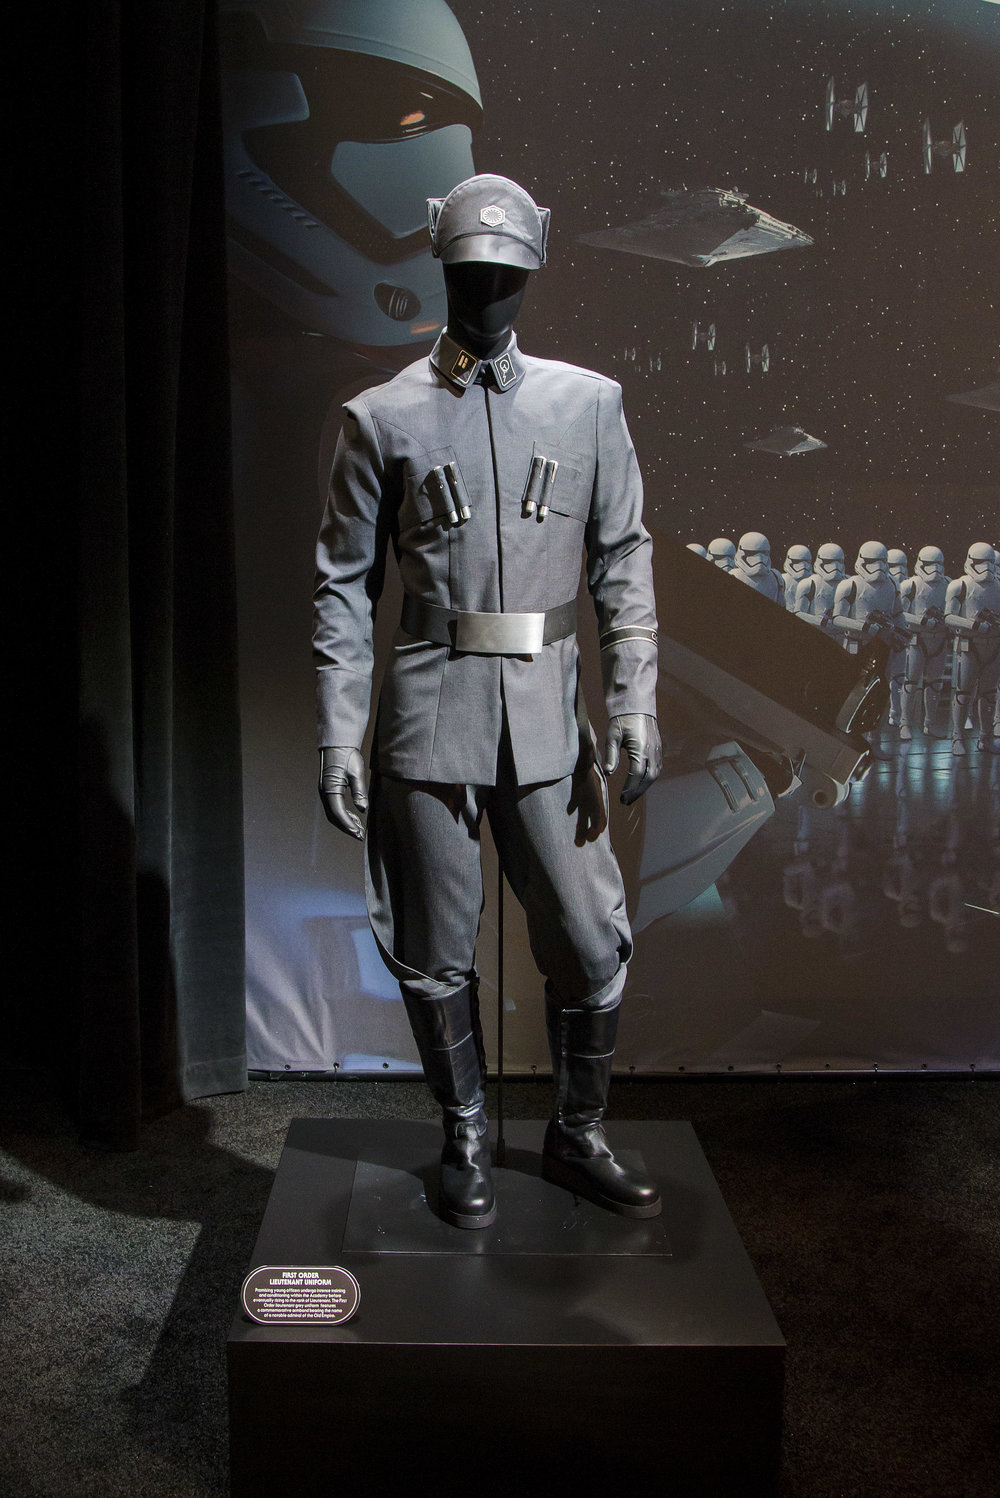 Star Wars Galaxy's Edge Cast Member Uniform